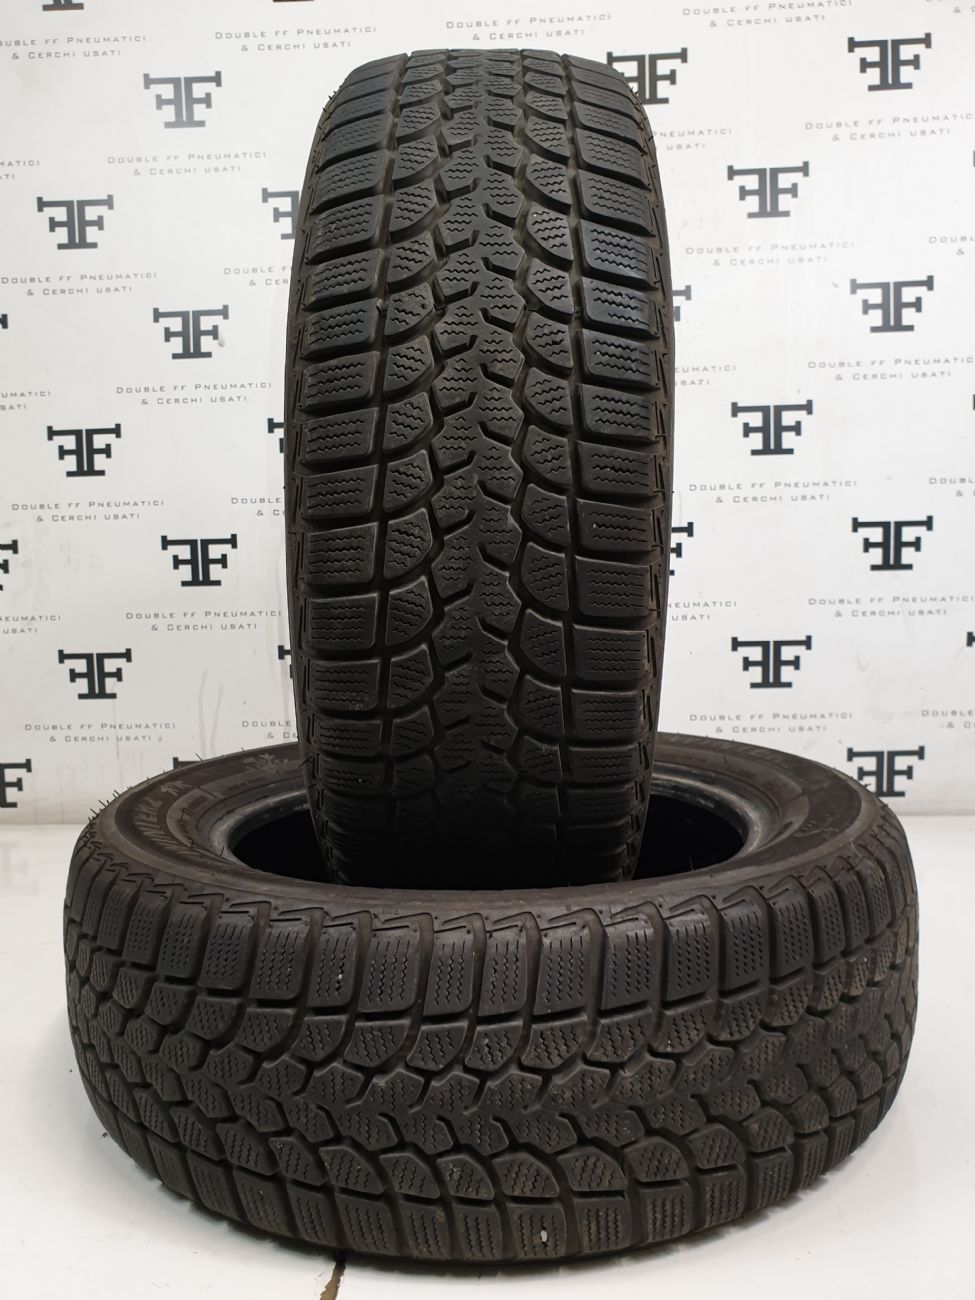 Pneumatici 185 60 R15 84 T FIRST STOP WINTER 2 invernale usati 80€